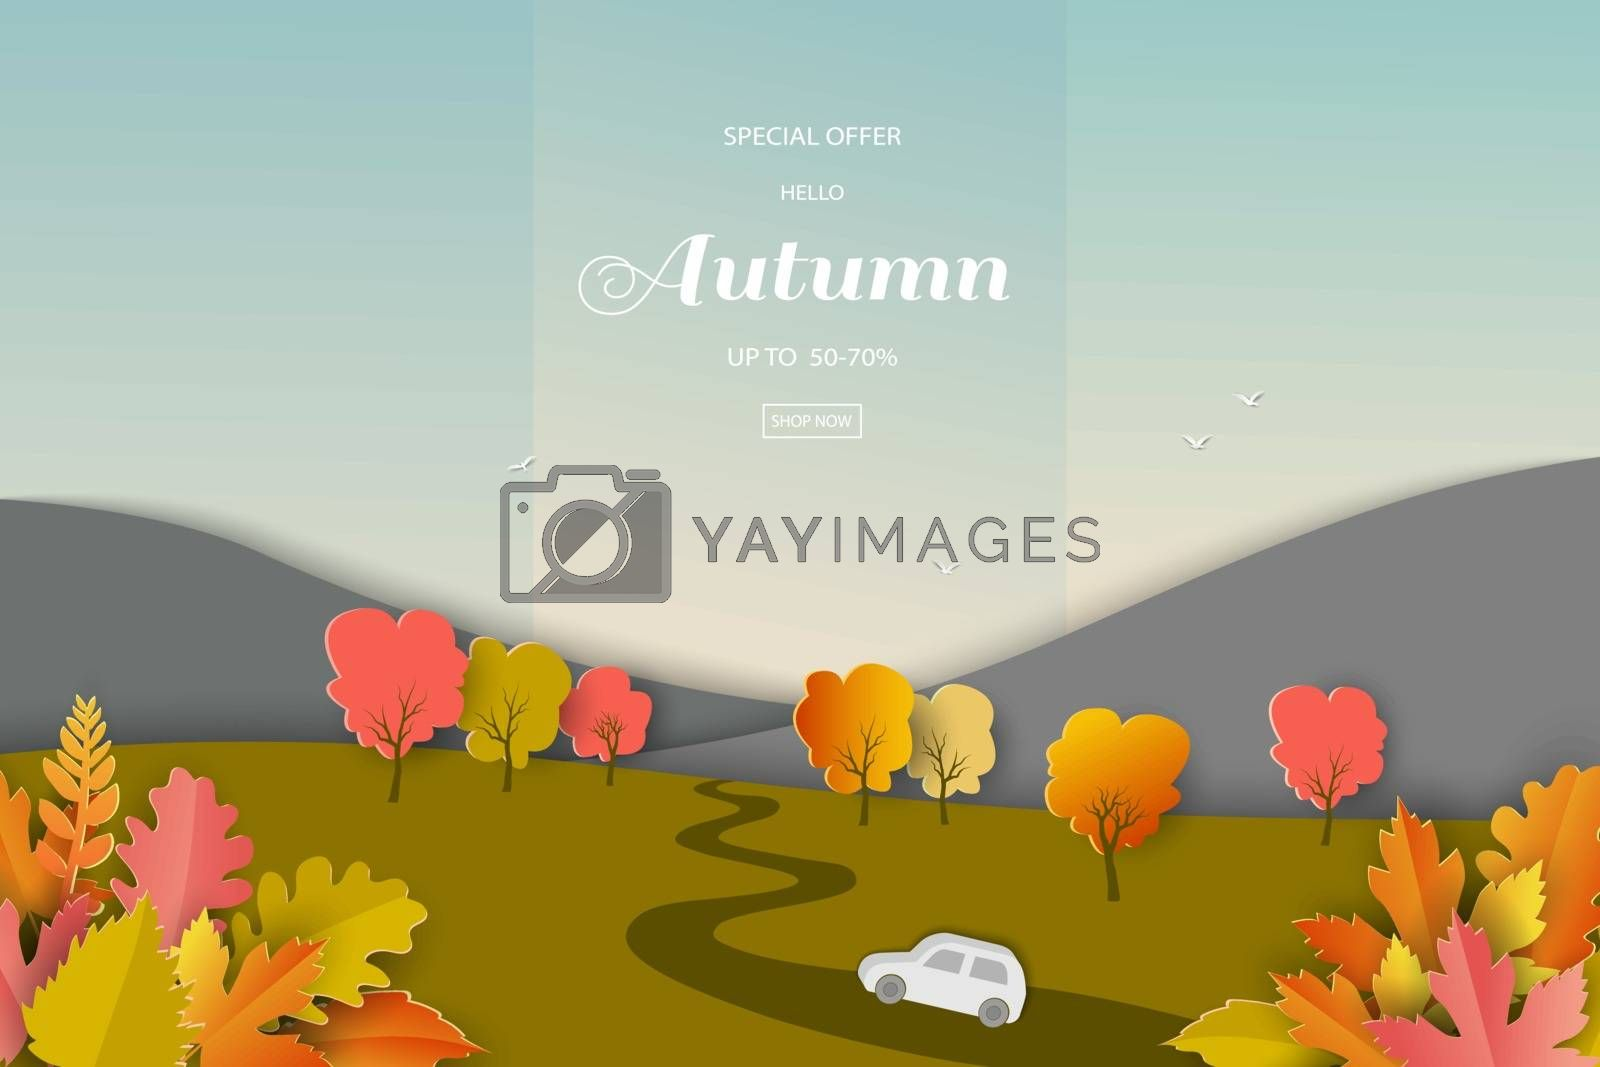 Landscape of autumn or fall background with colorful leaves for shopping promotion,web banner,poster or flyer by PIMPAKA